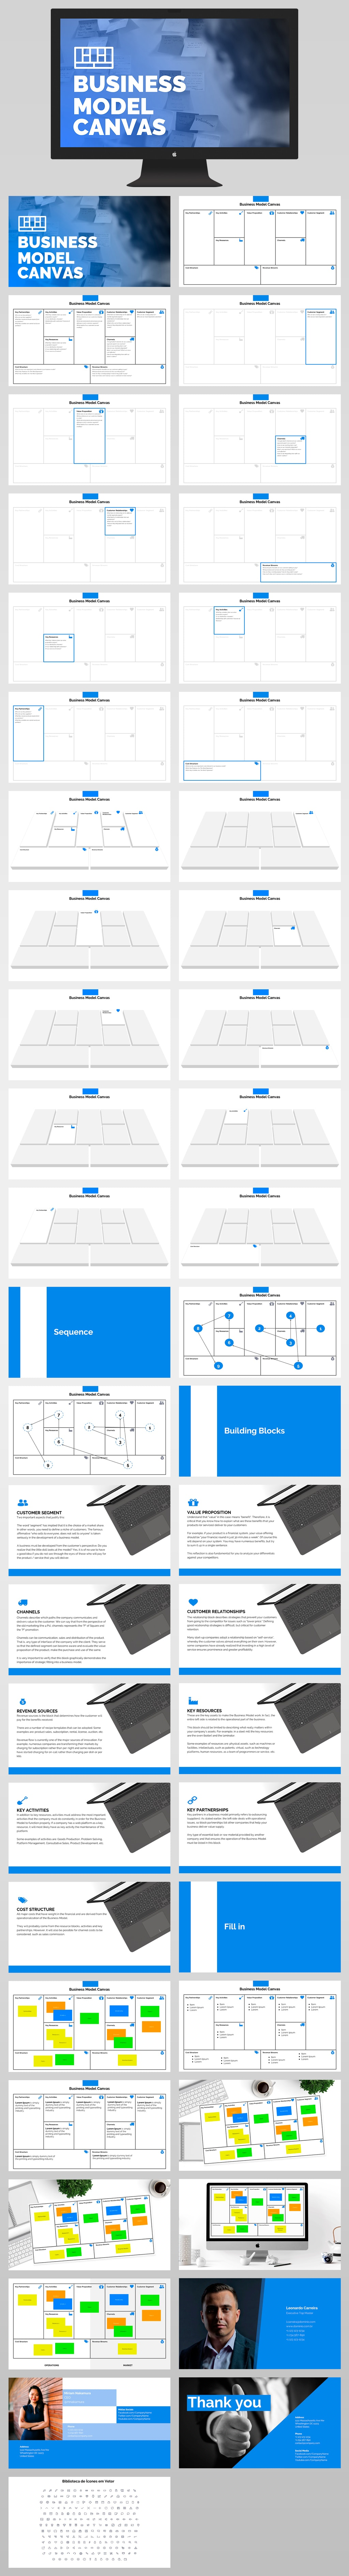 Business Model Canvas Presentation Template light Slides Powerpoint